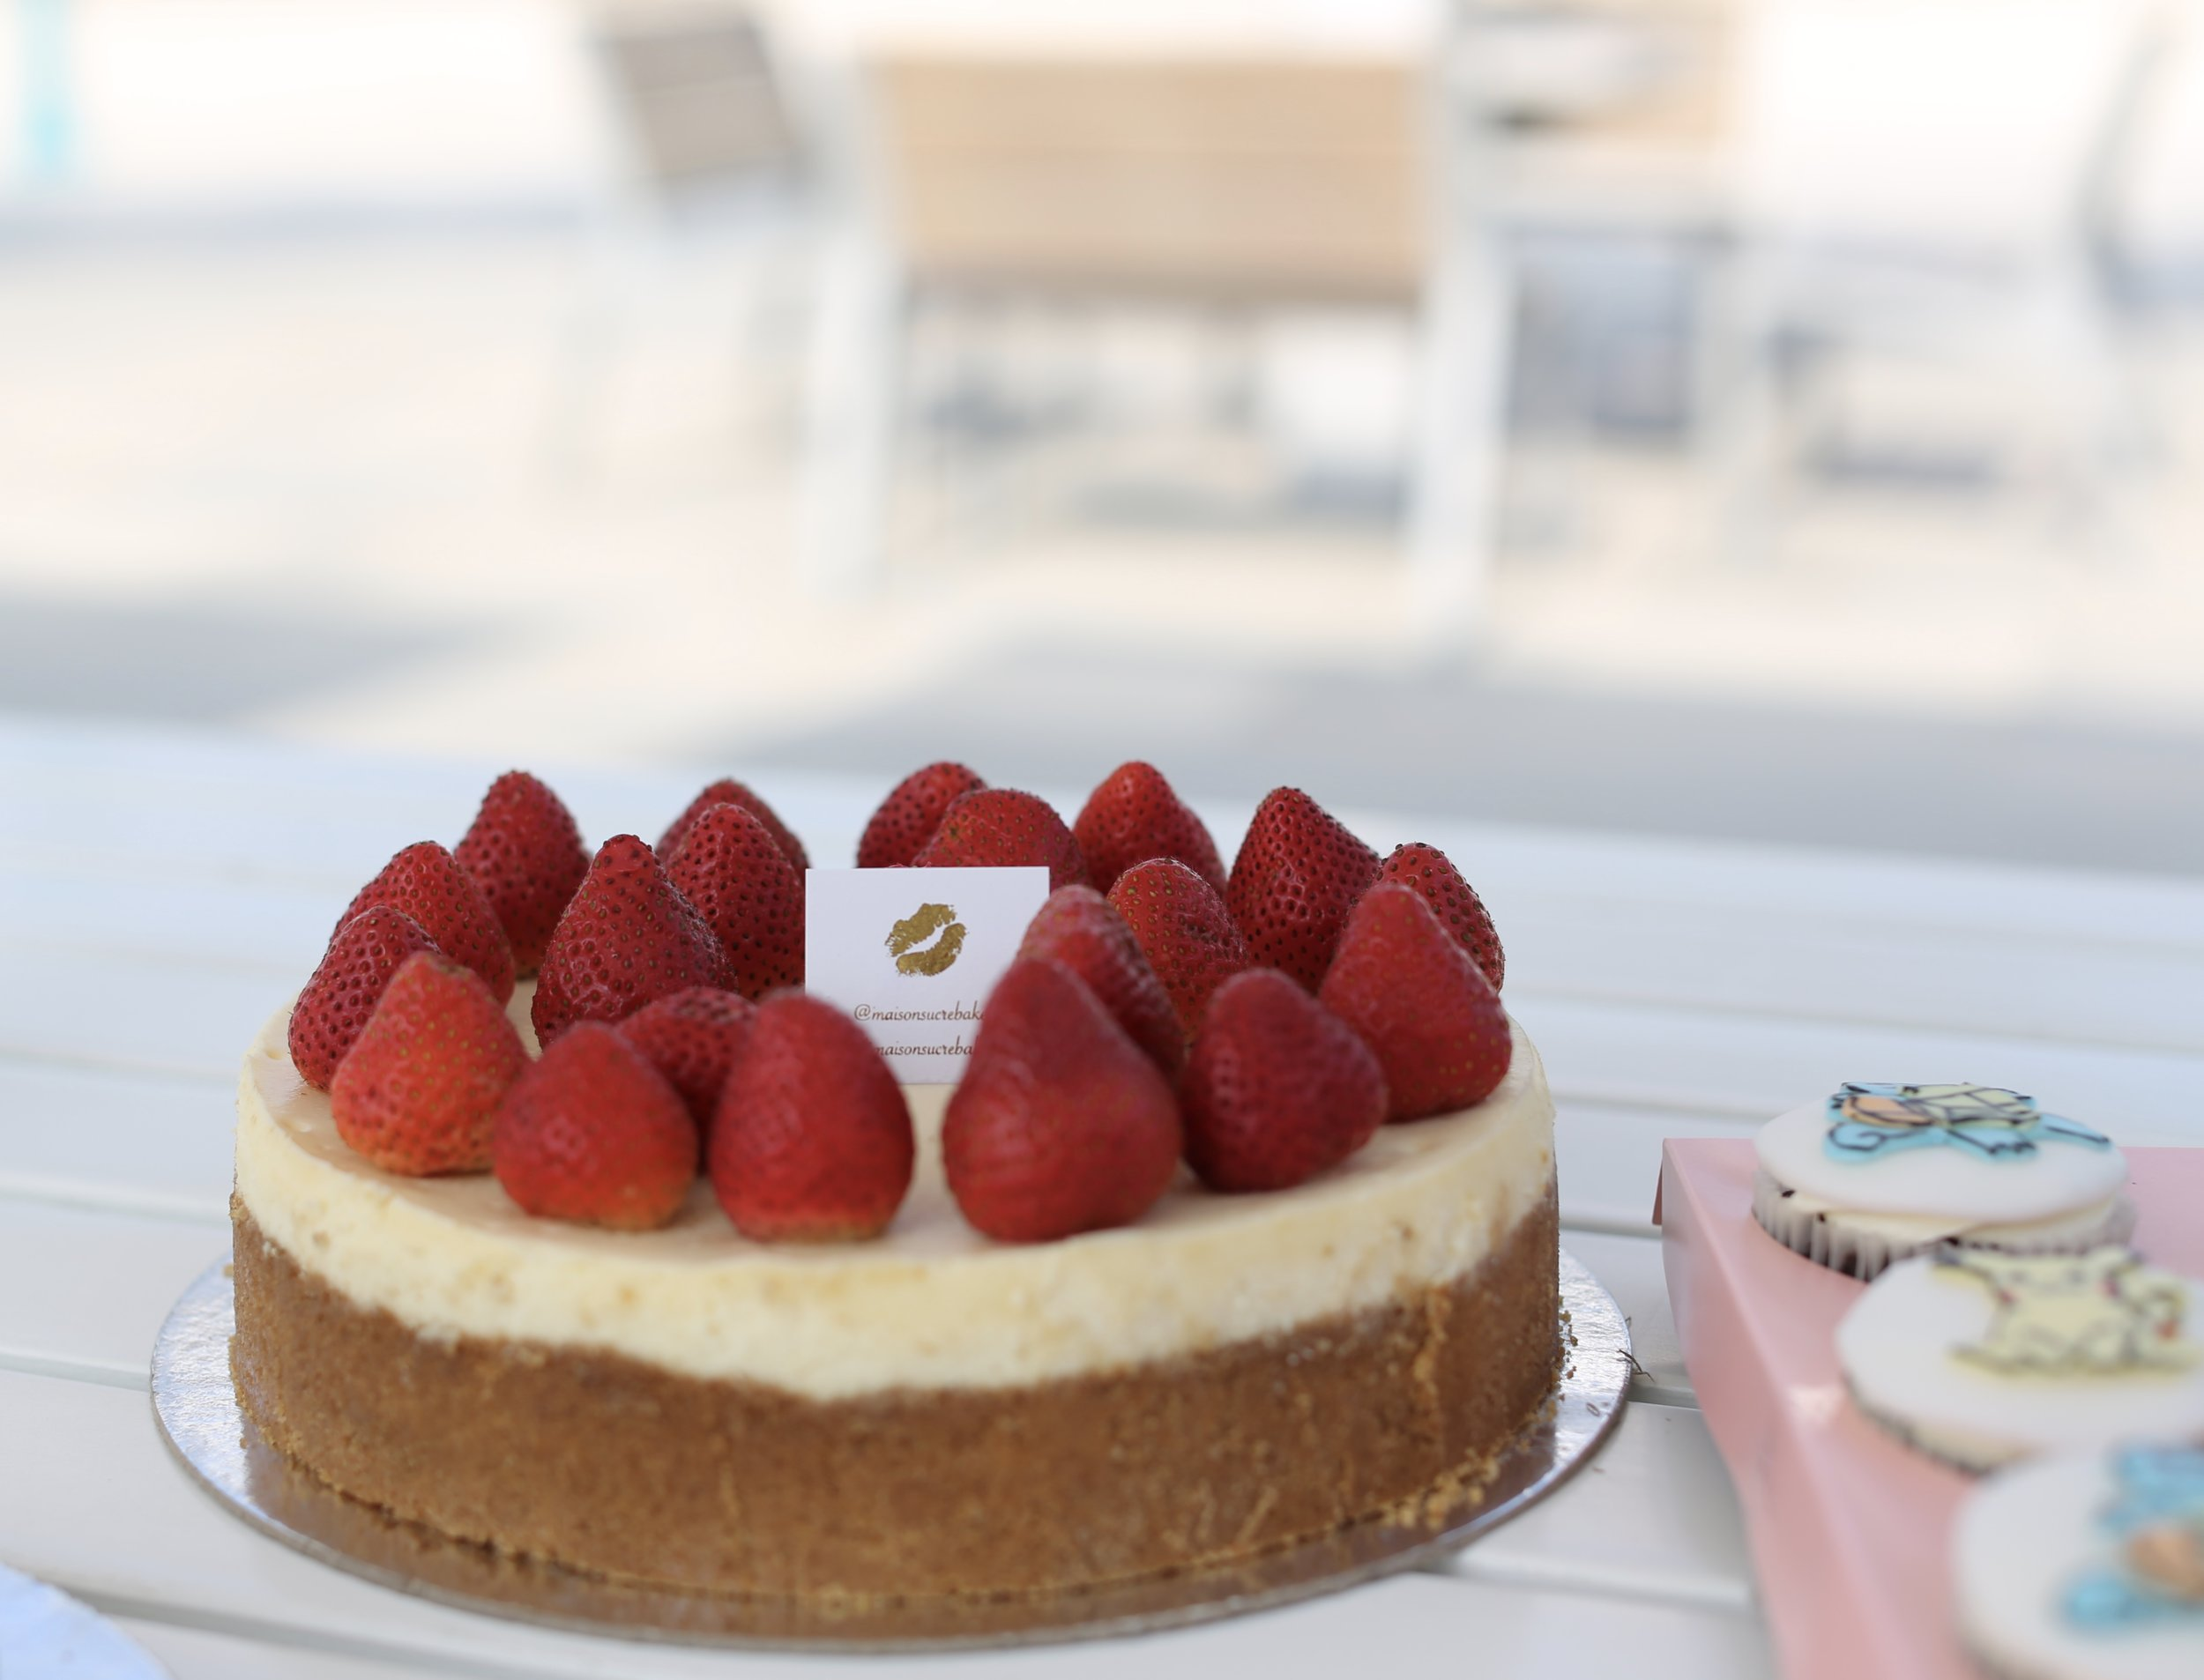 Maison Sucre 's delectable strawberry cheesecake for the parents